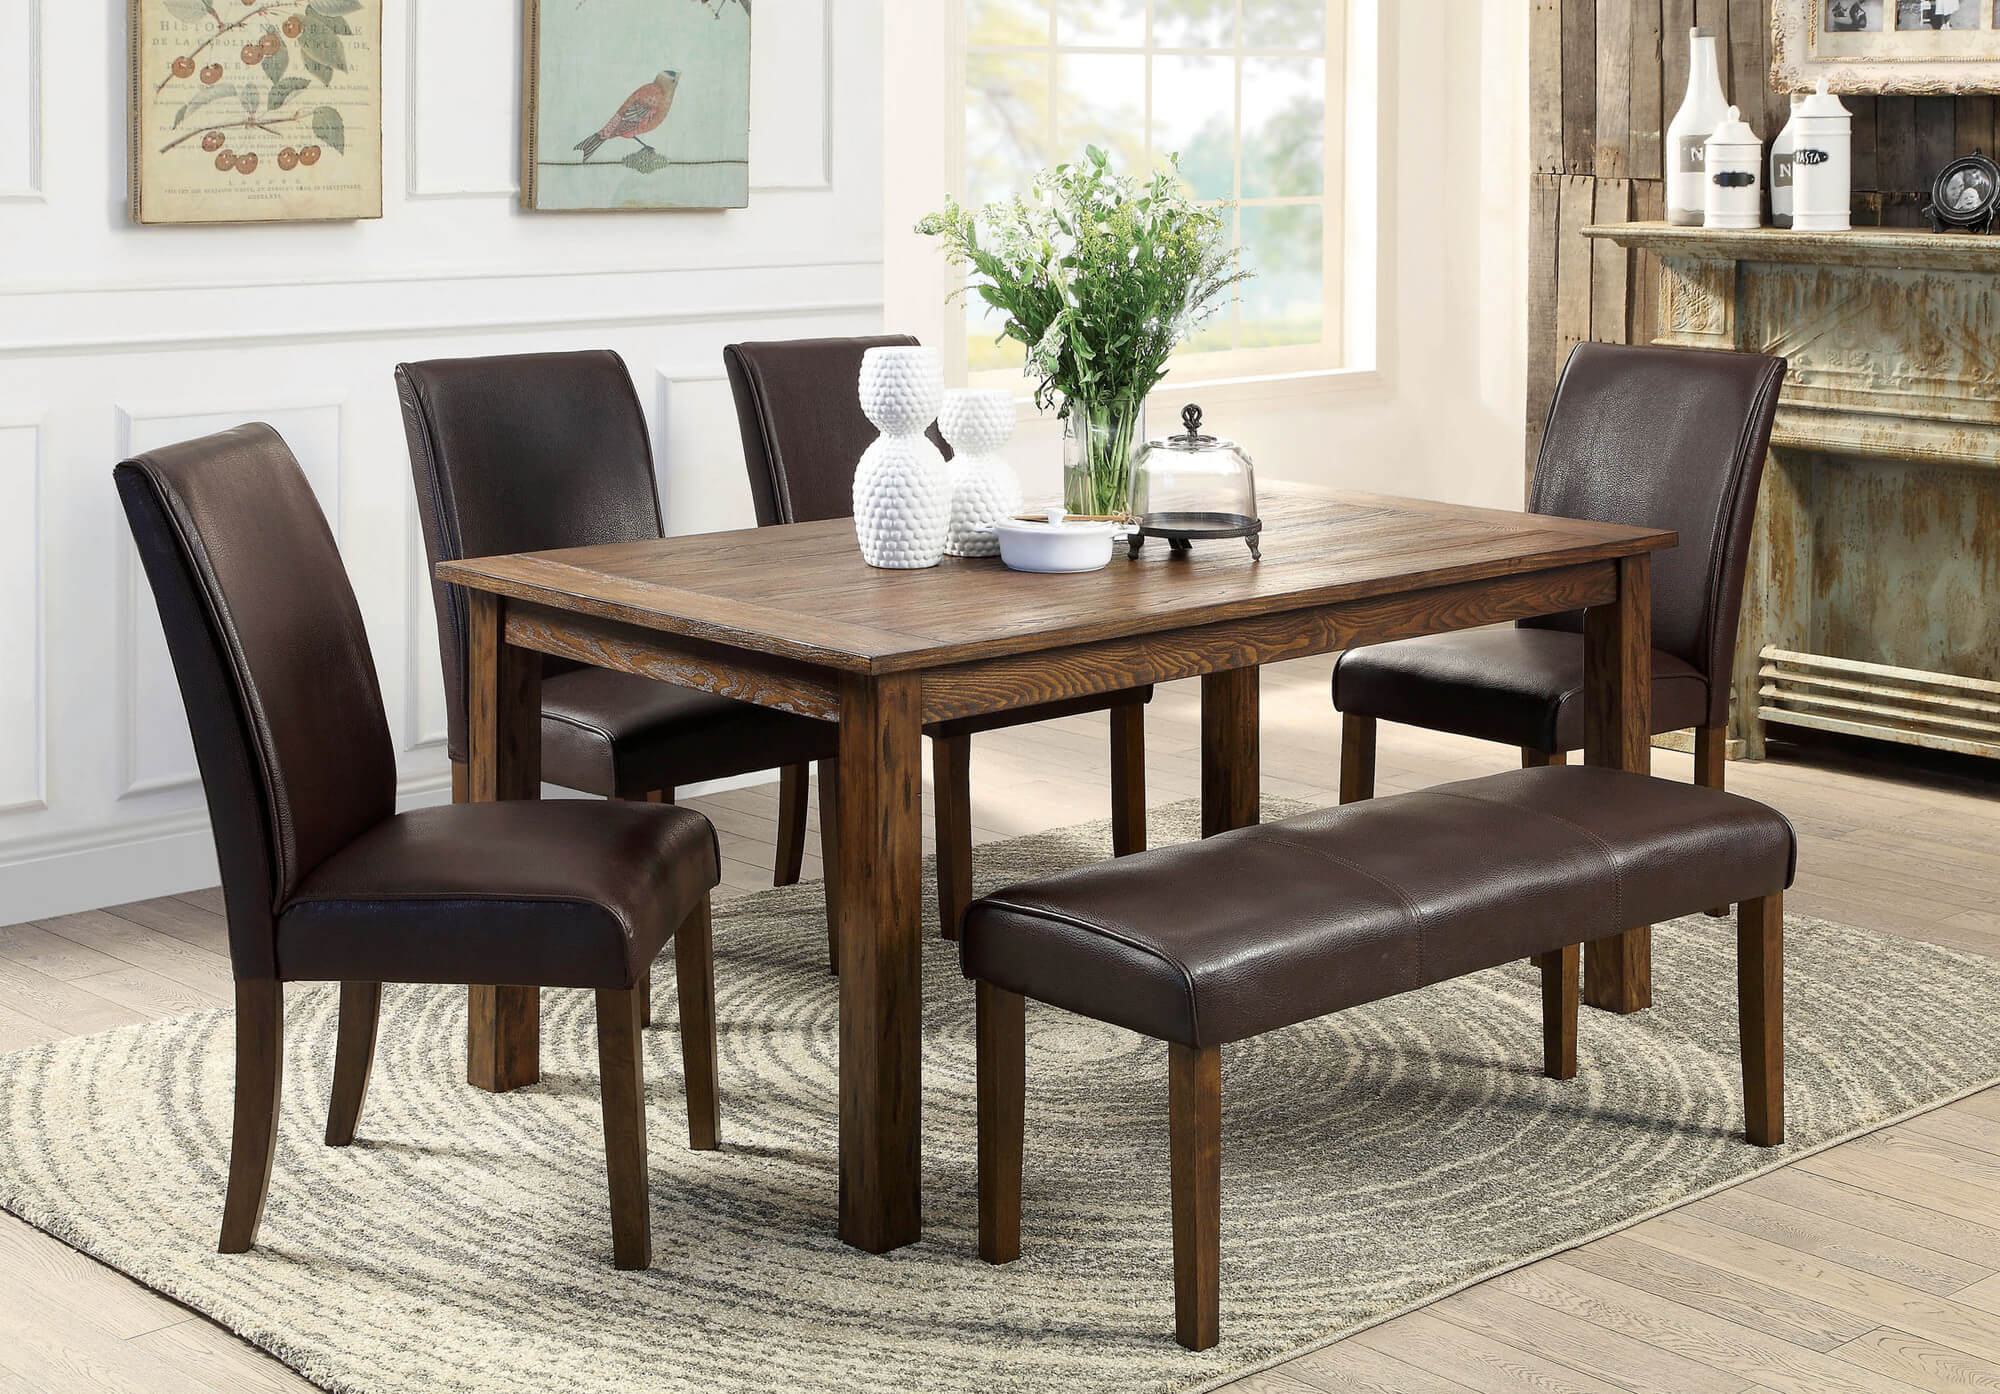 dining room sets bench seating small square kitchen table Here s a rustic rectangle dining table with fully cushioned chairs and bench This look works